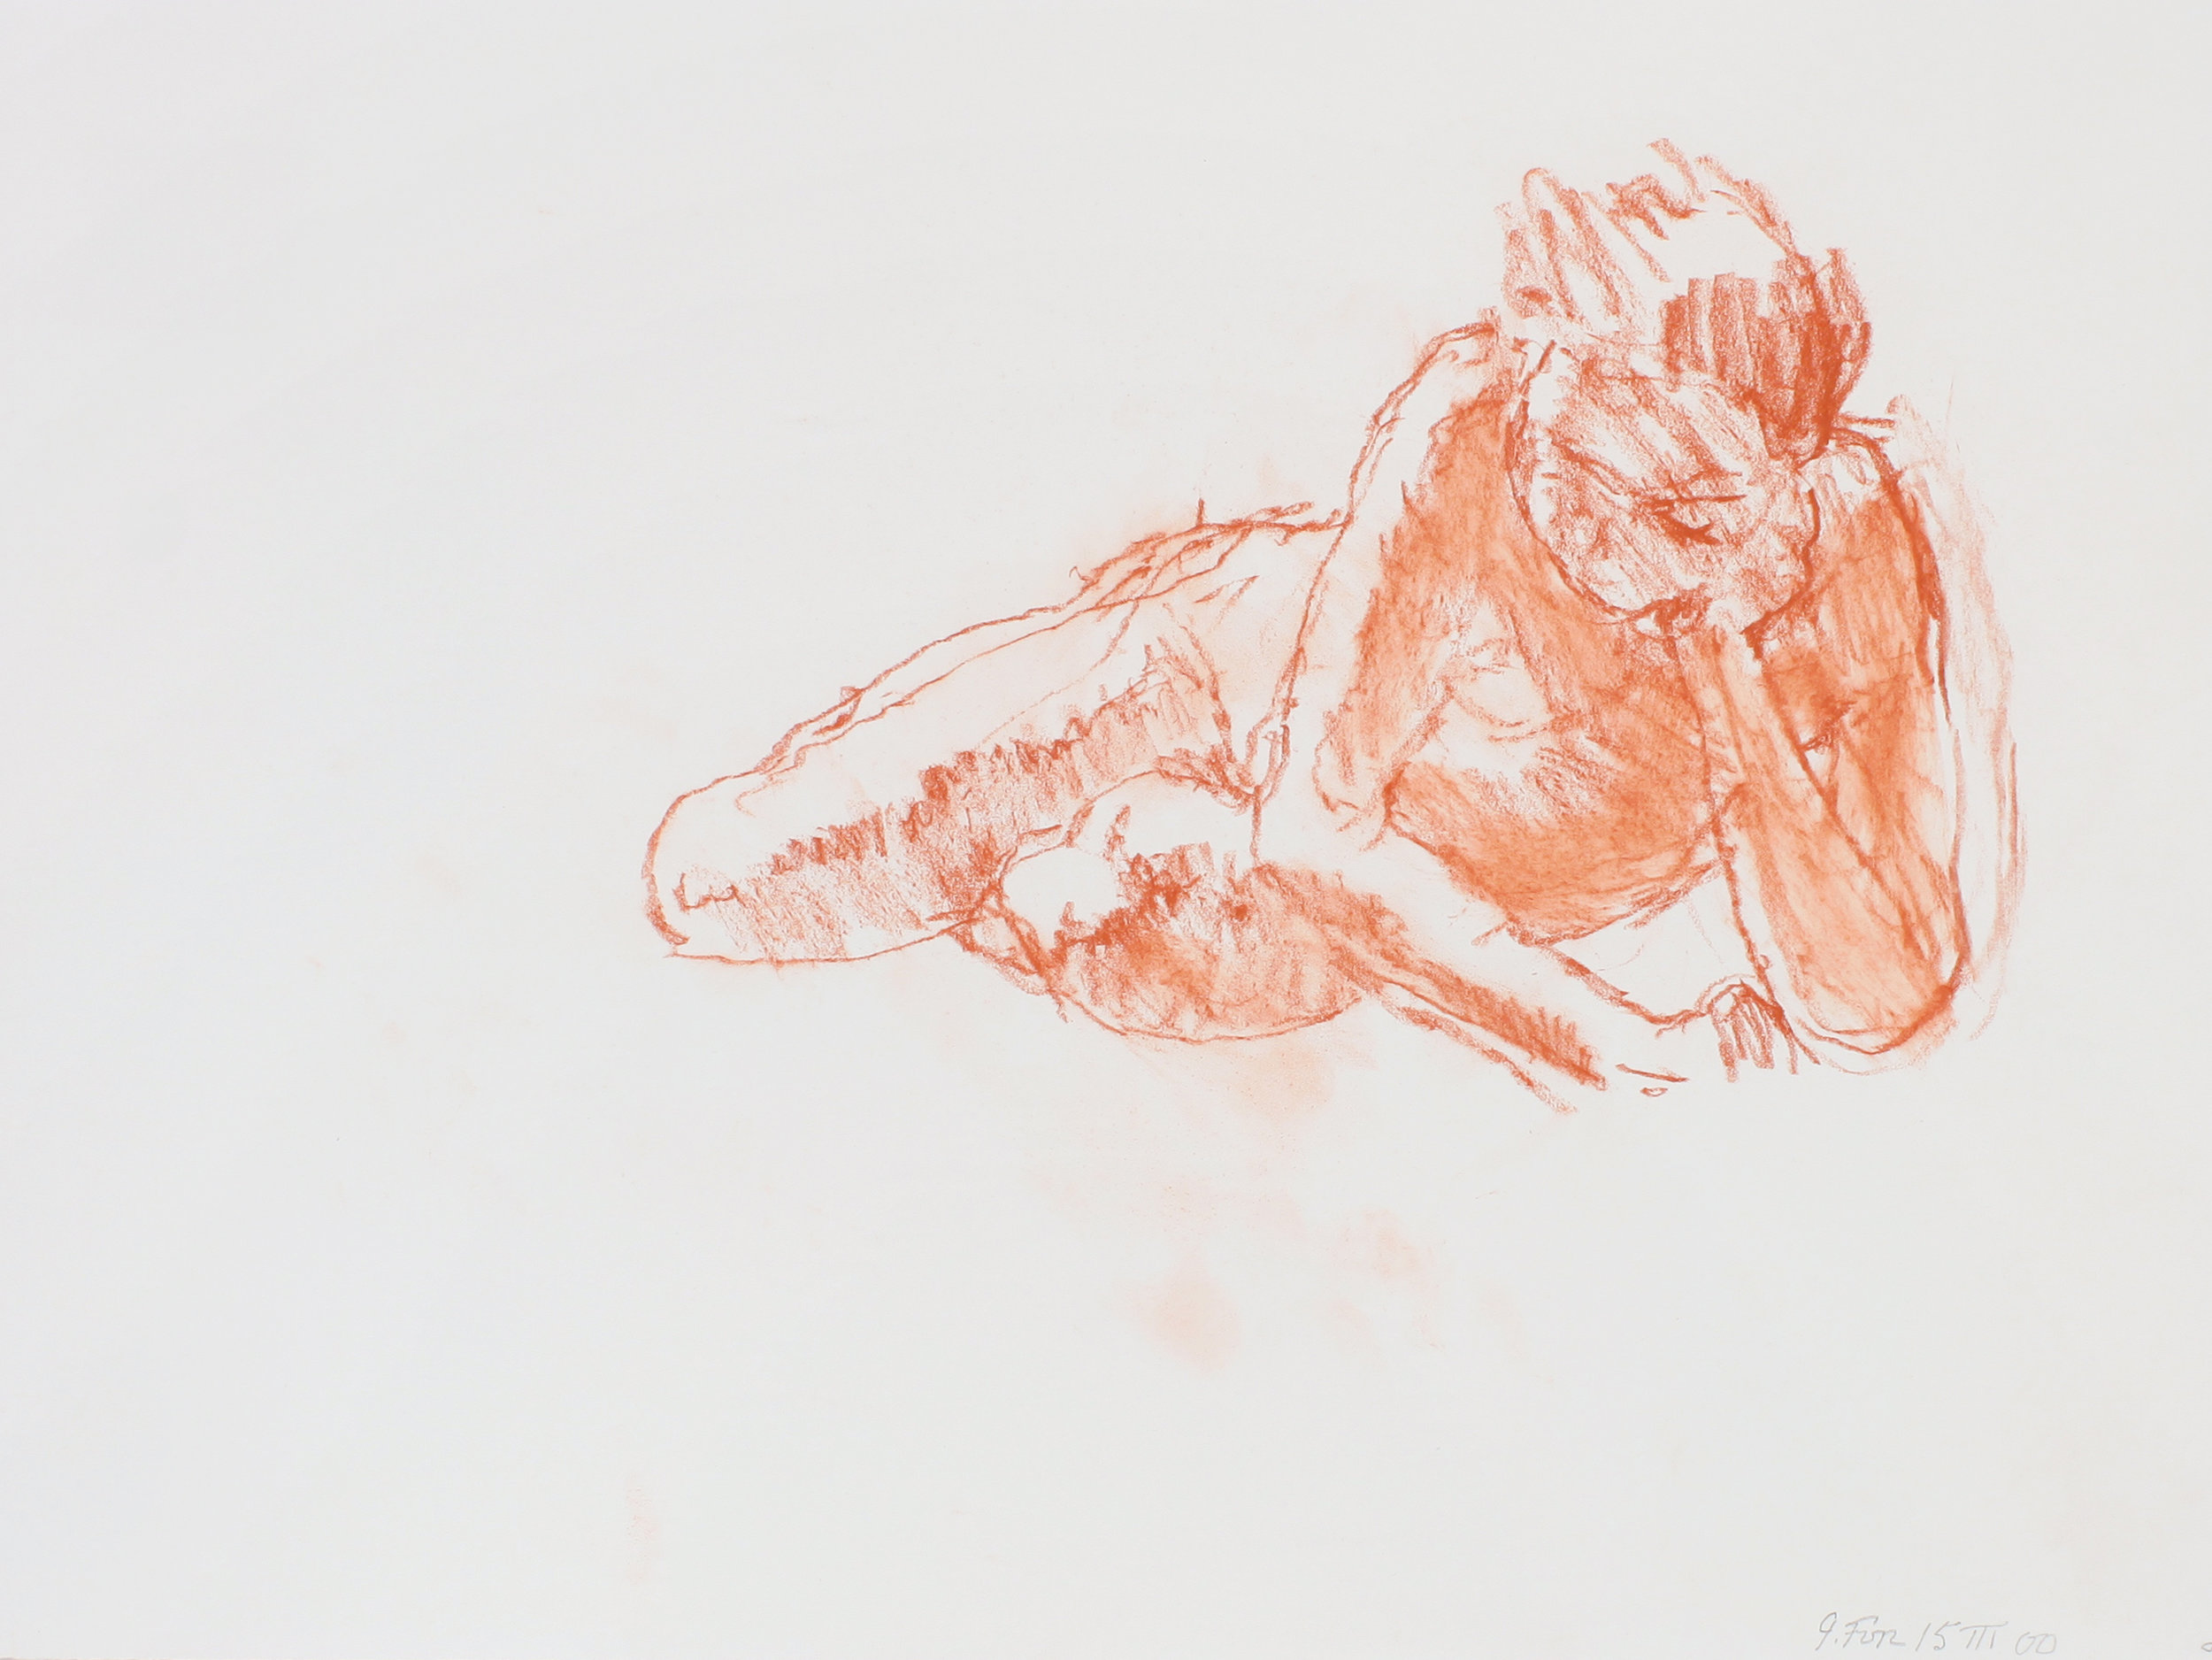 2000_Half_Reclining_Nude_on_Floor_with_Hand_on_Head_Floor_red_conté_on_paper_11x15in_WPF561.jpg